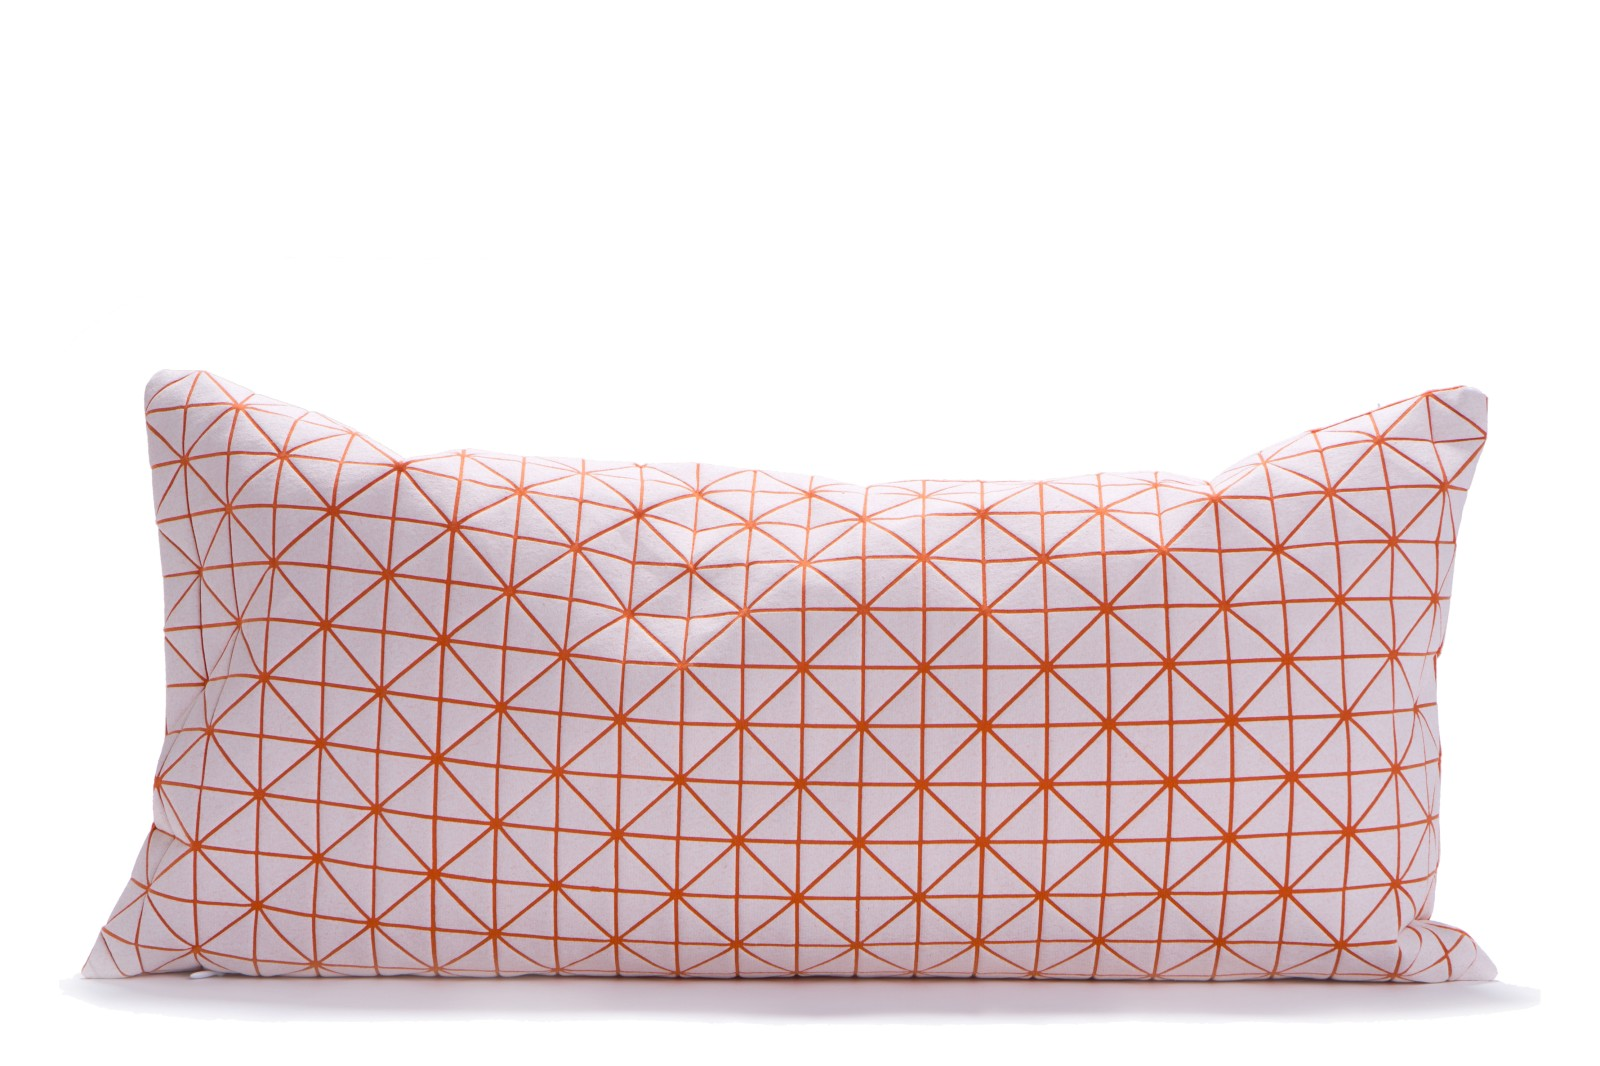 Geo Origami Rectangular Cushion Cover Orange